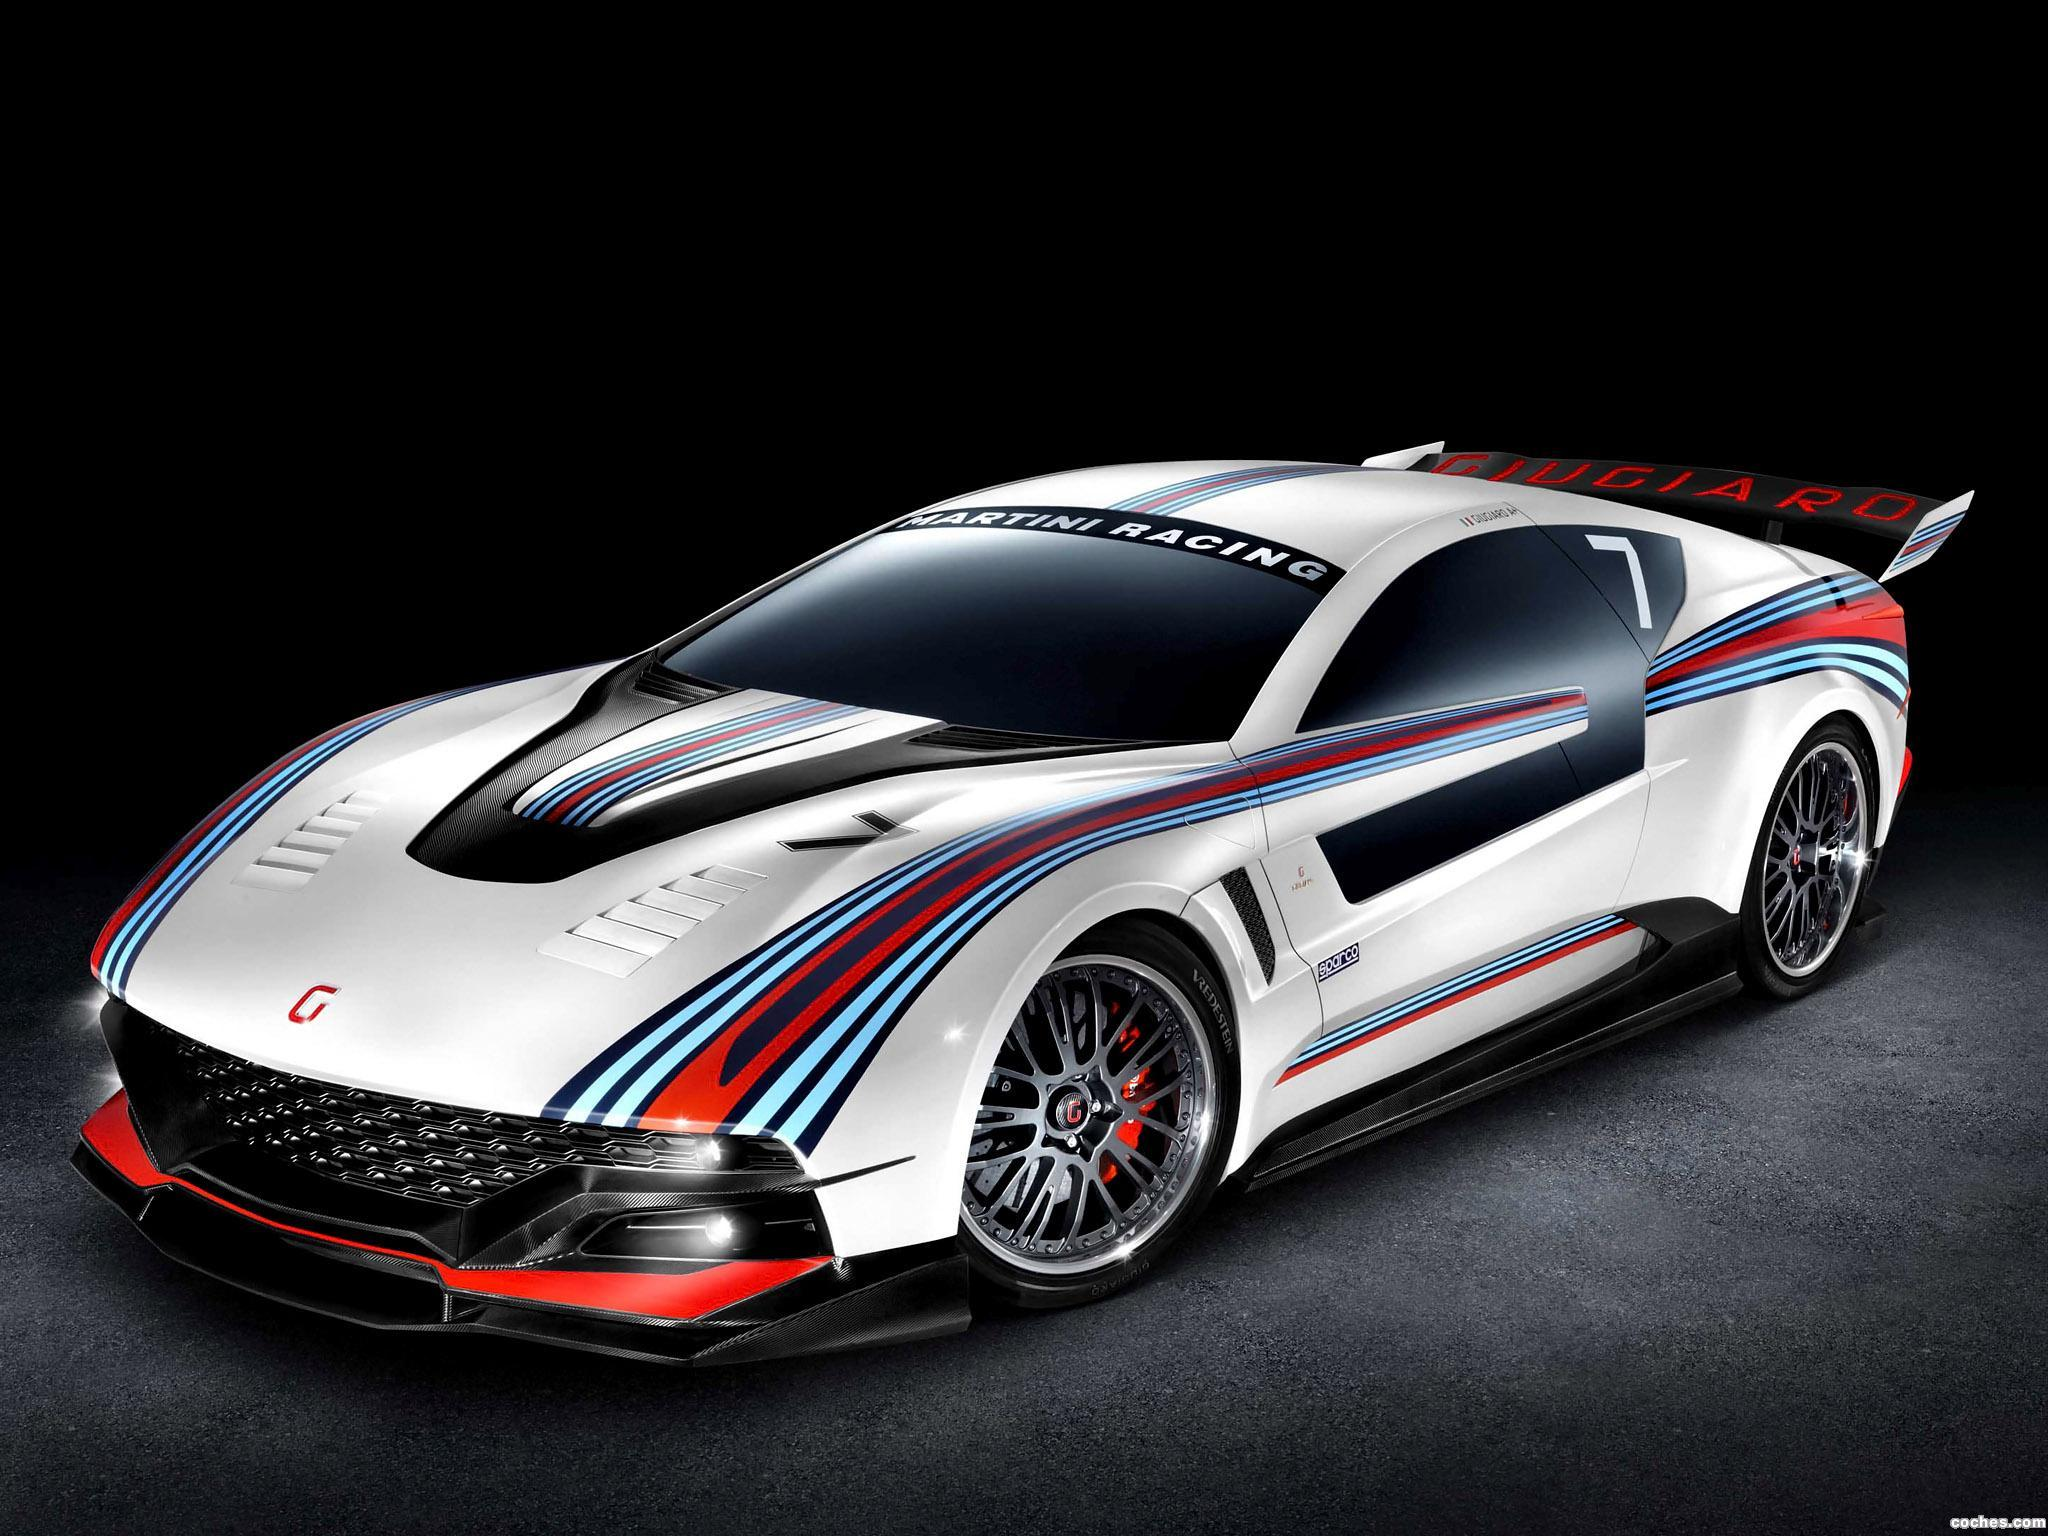 Foto 0 de Italdesign Giugiaro Brivido Martini Racing 2012